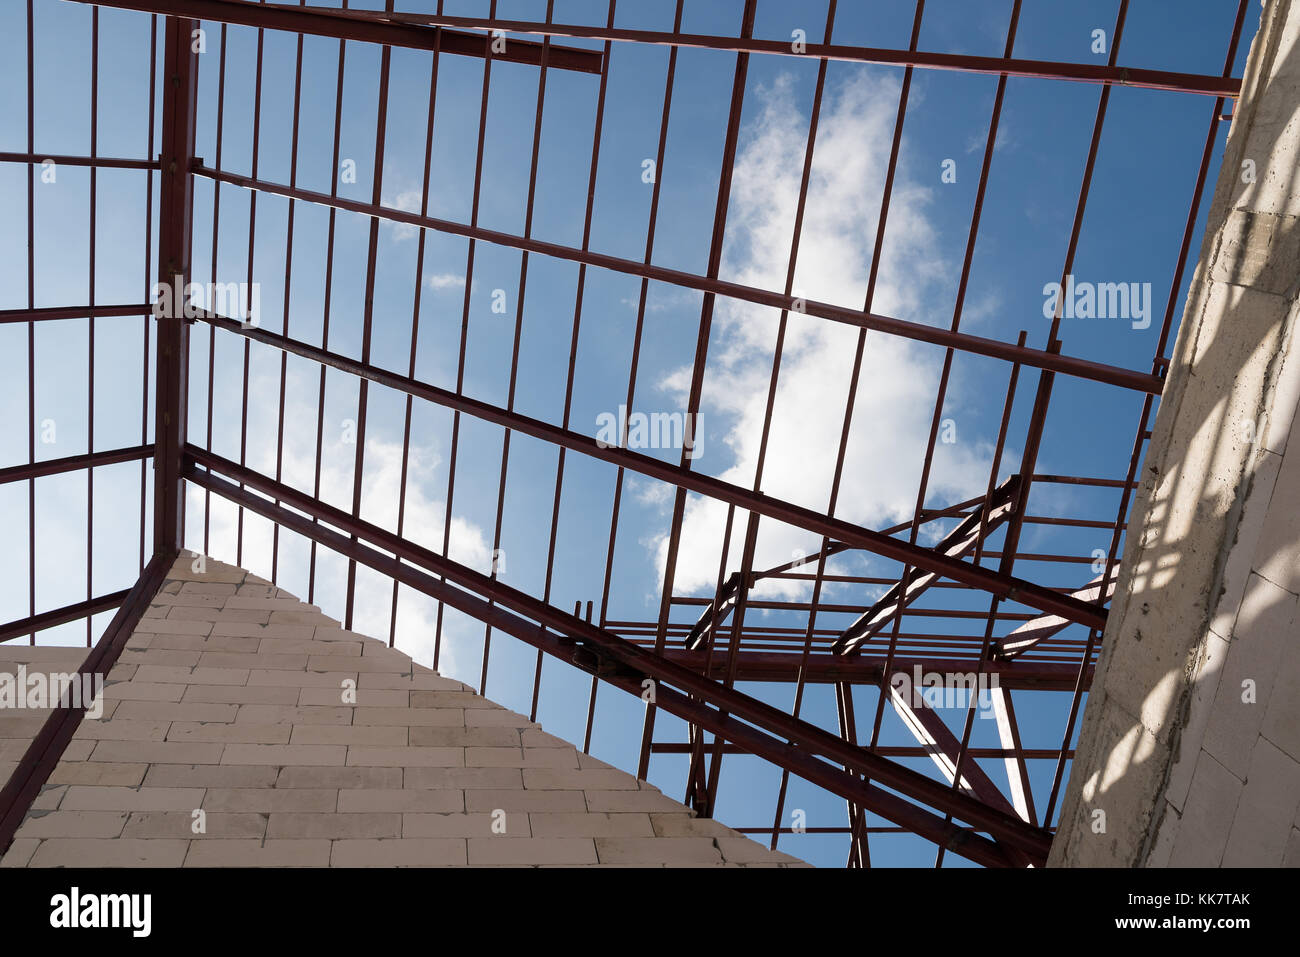 Steel Roof Truss Stock Photos Amp Steel Roof Truss Stock